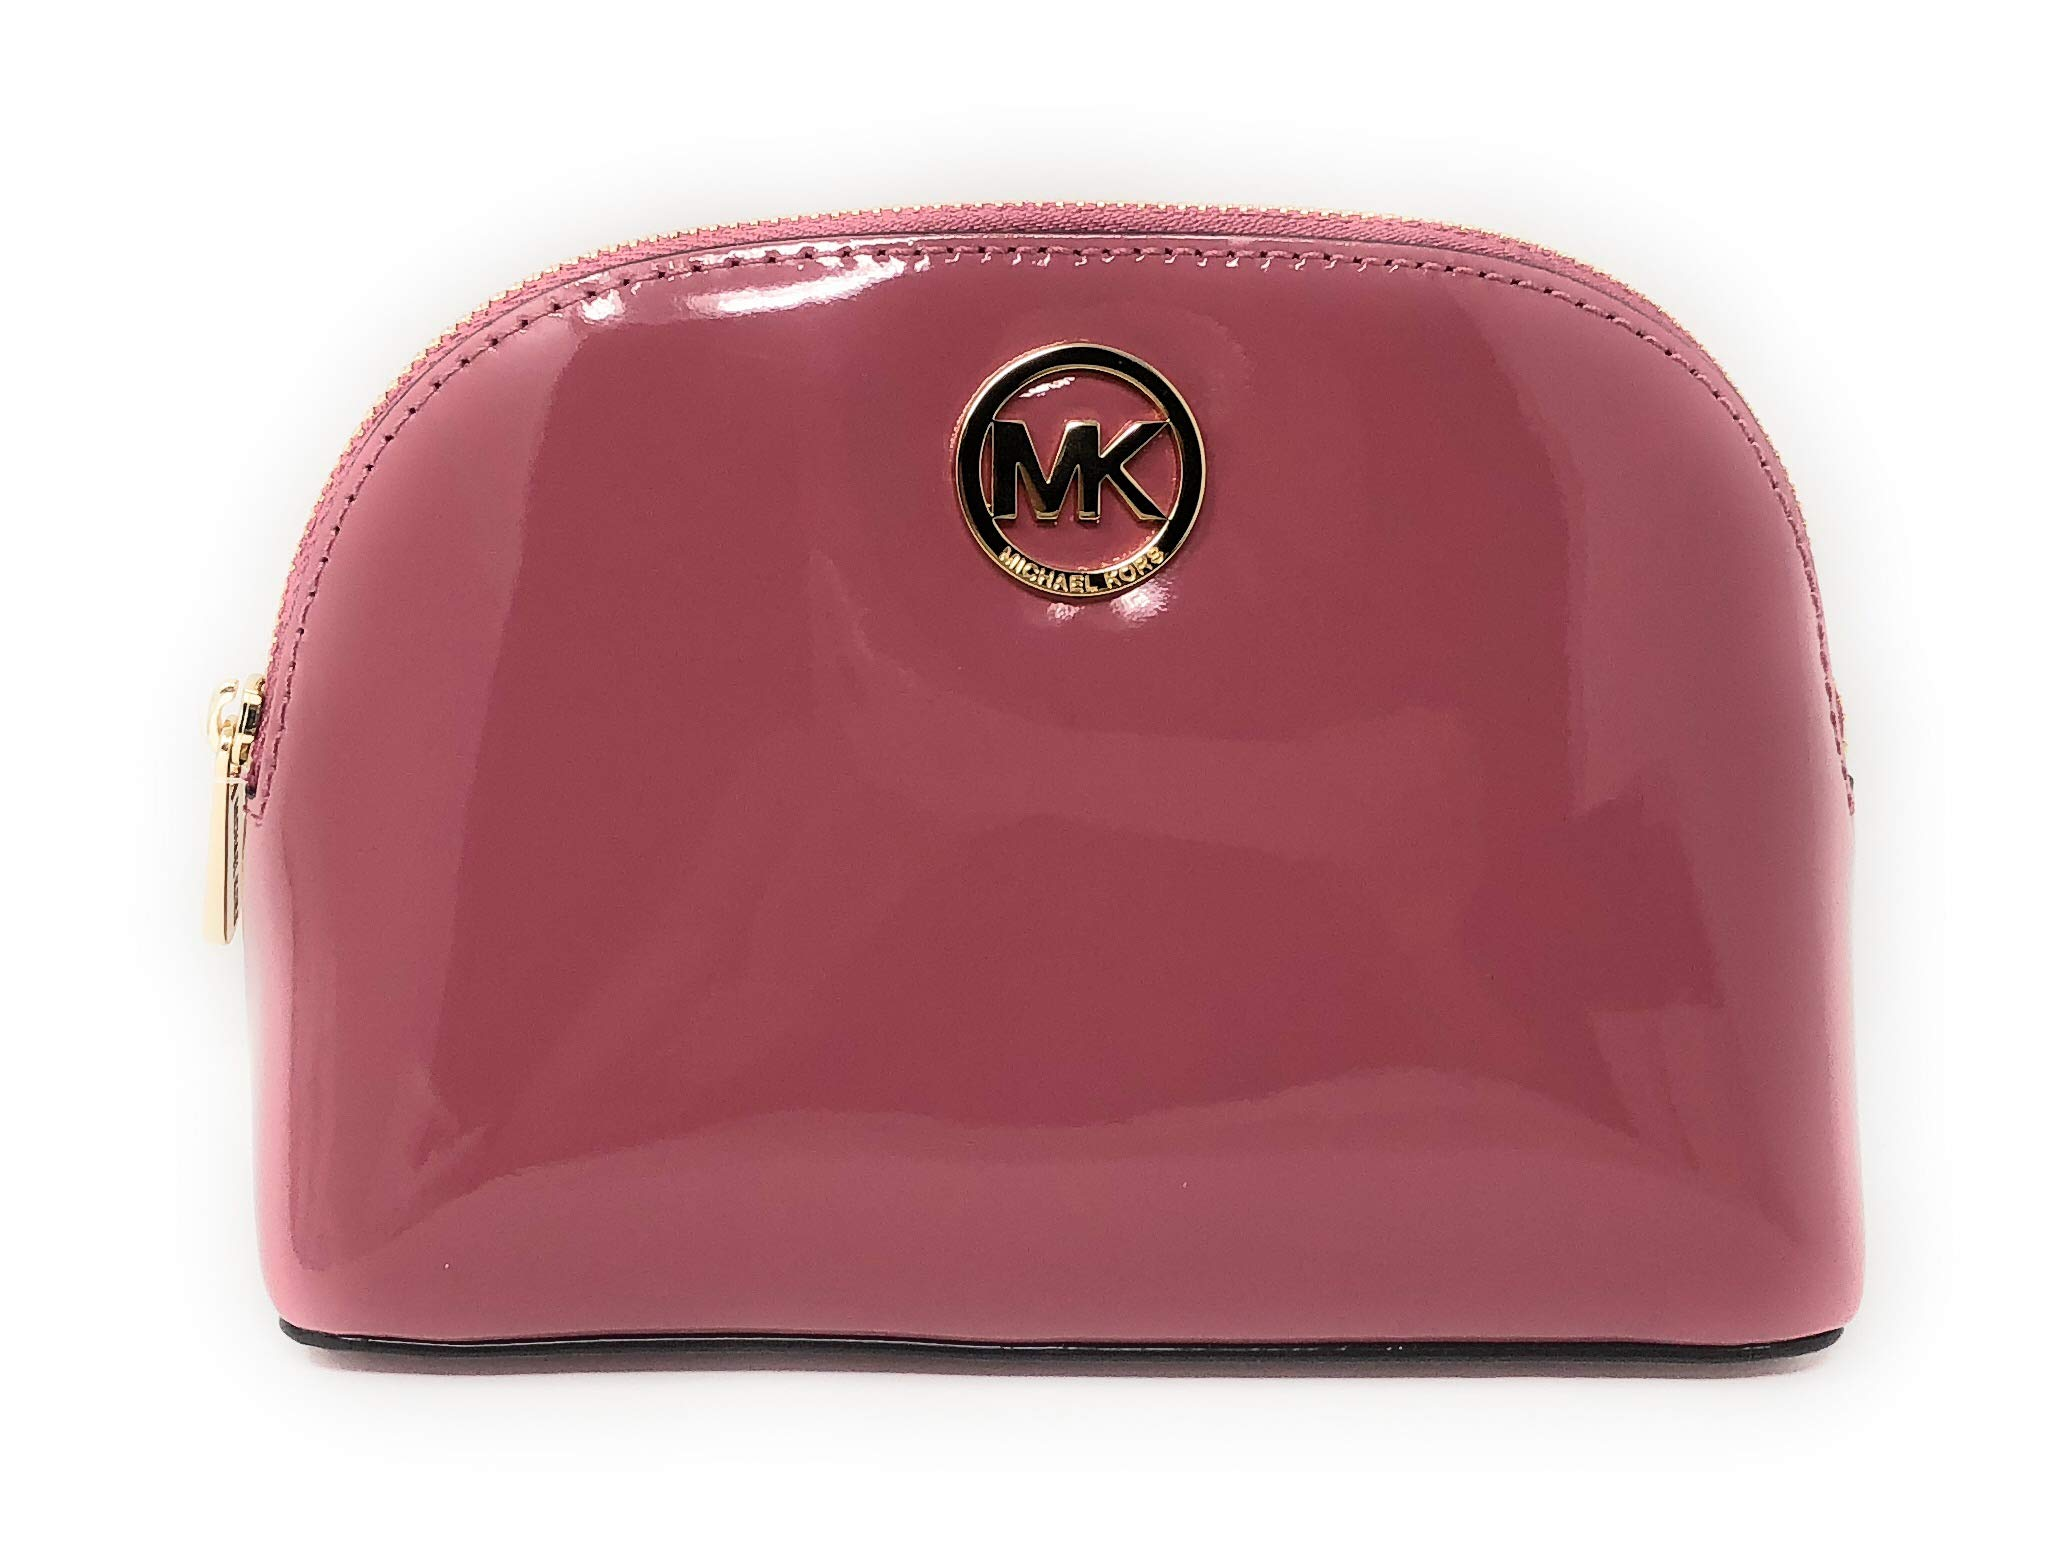 Michael Kors Fulton Patent Leather Cosmetic Travel Pouch in Tulip by Michael Kors